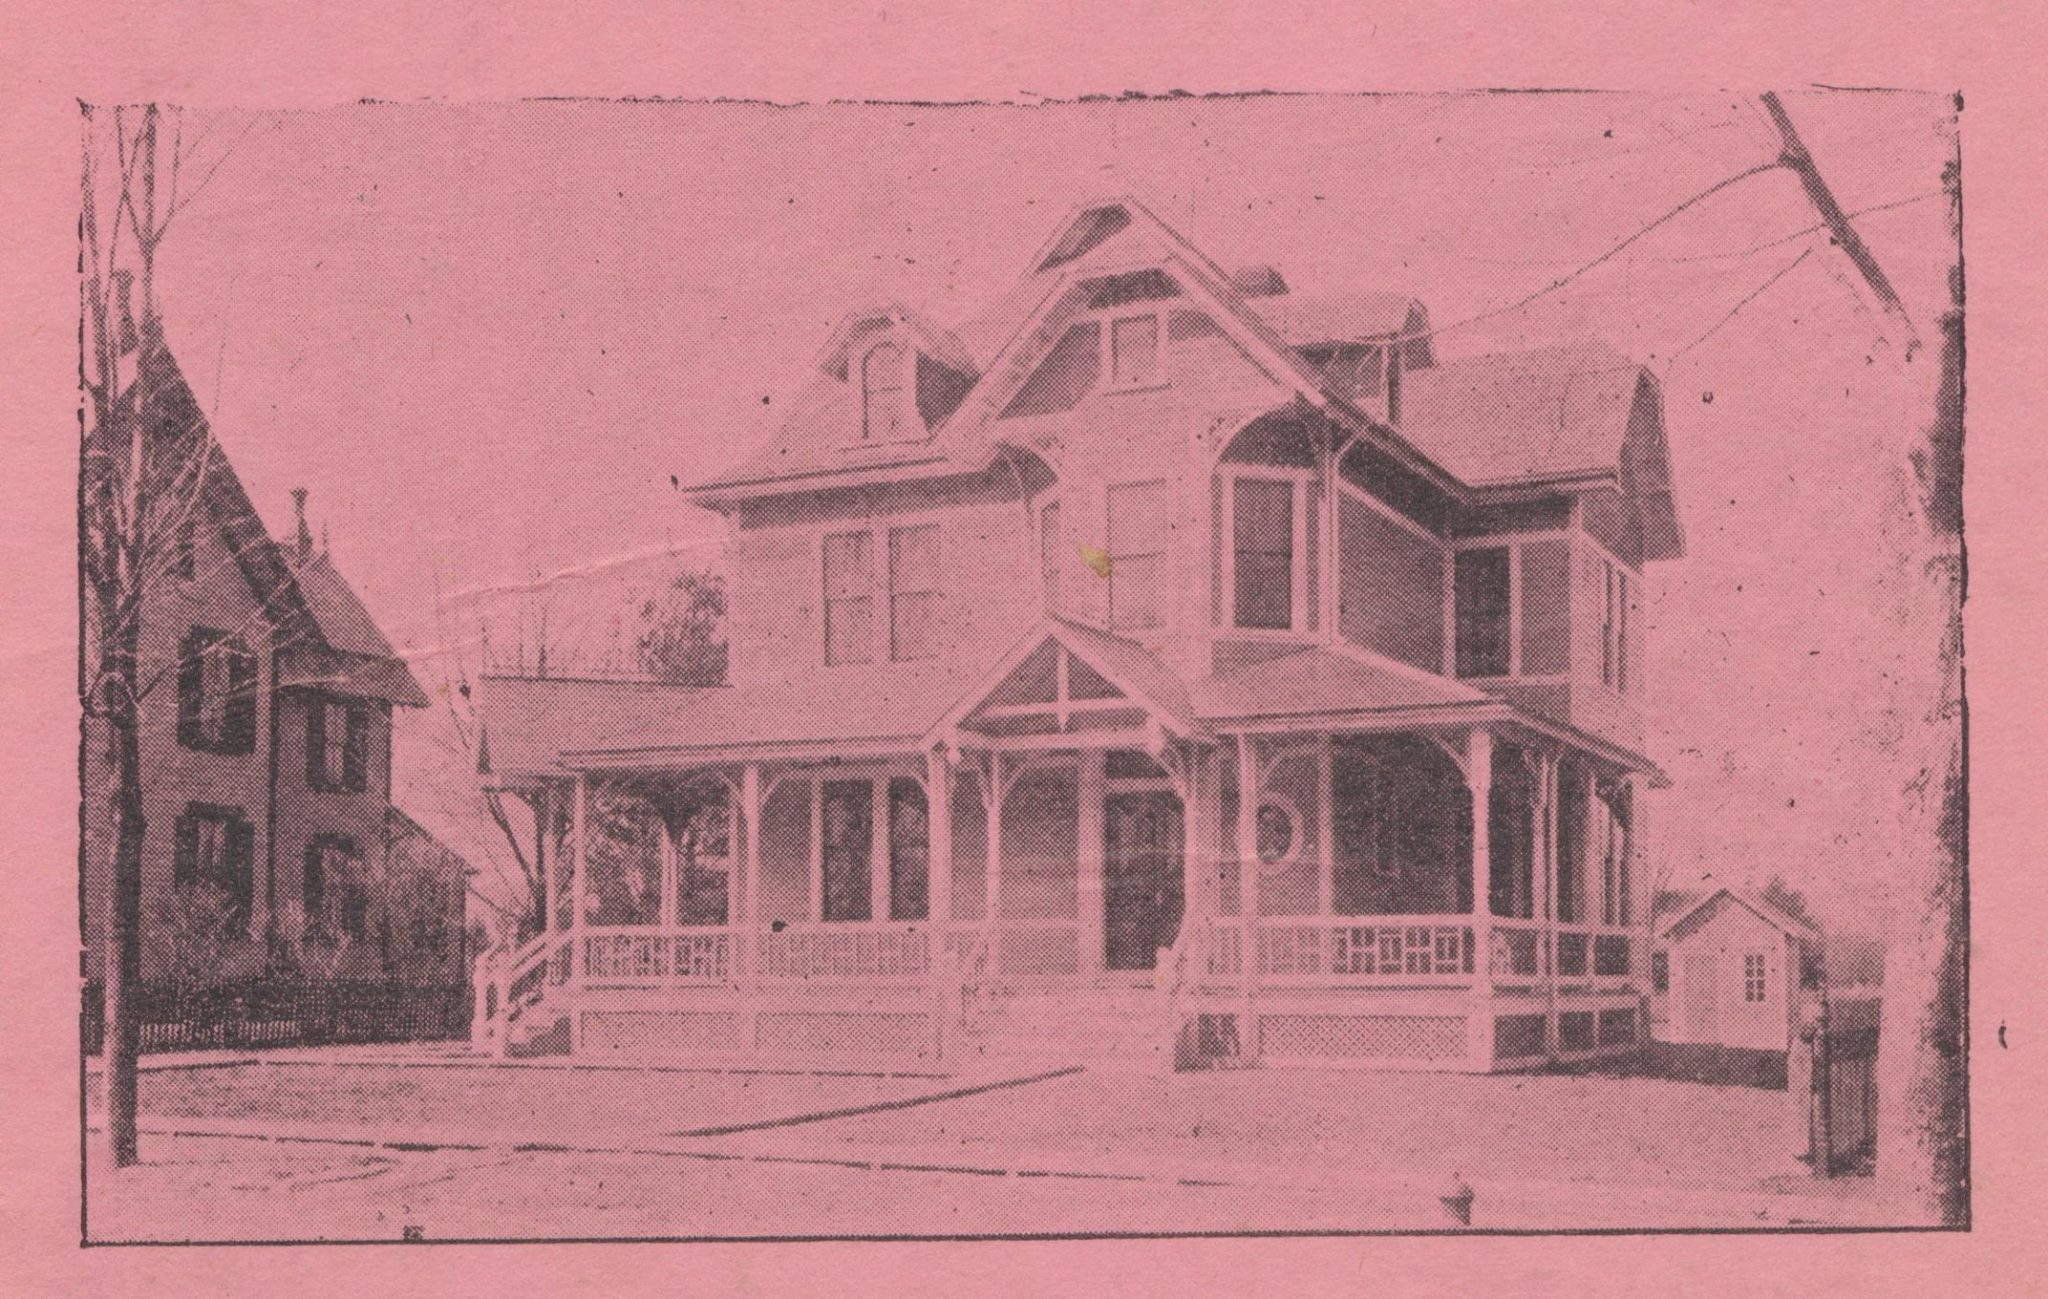 Photo reTRIEVED FROM THE ARCHIVES OF THE HADDONFIELD HISTORICAL SOCIETY.